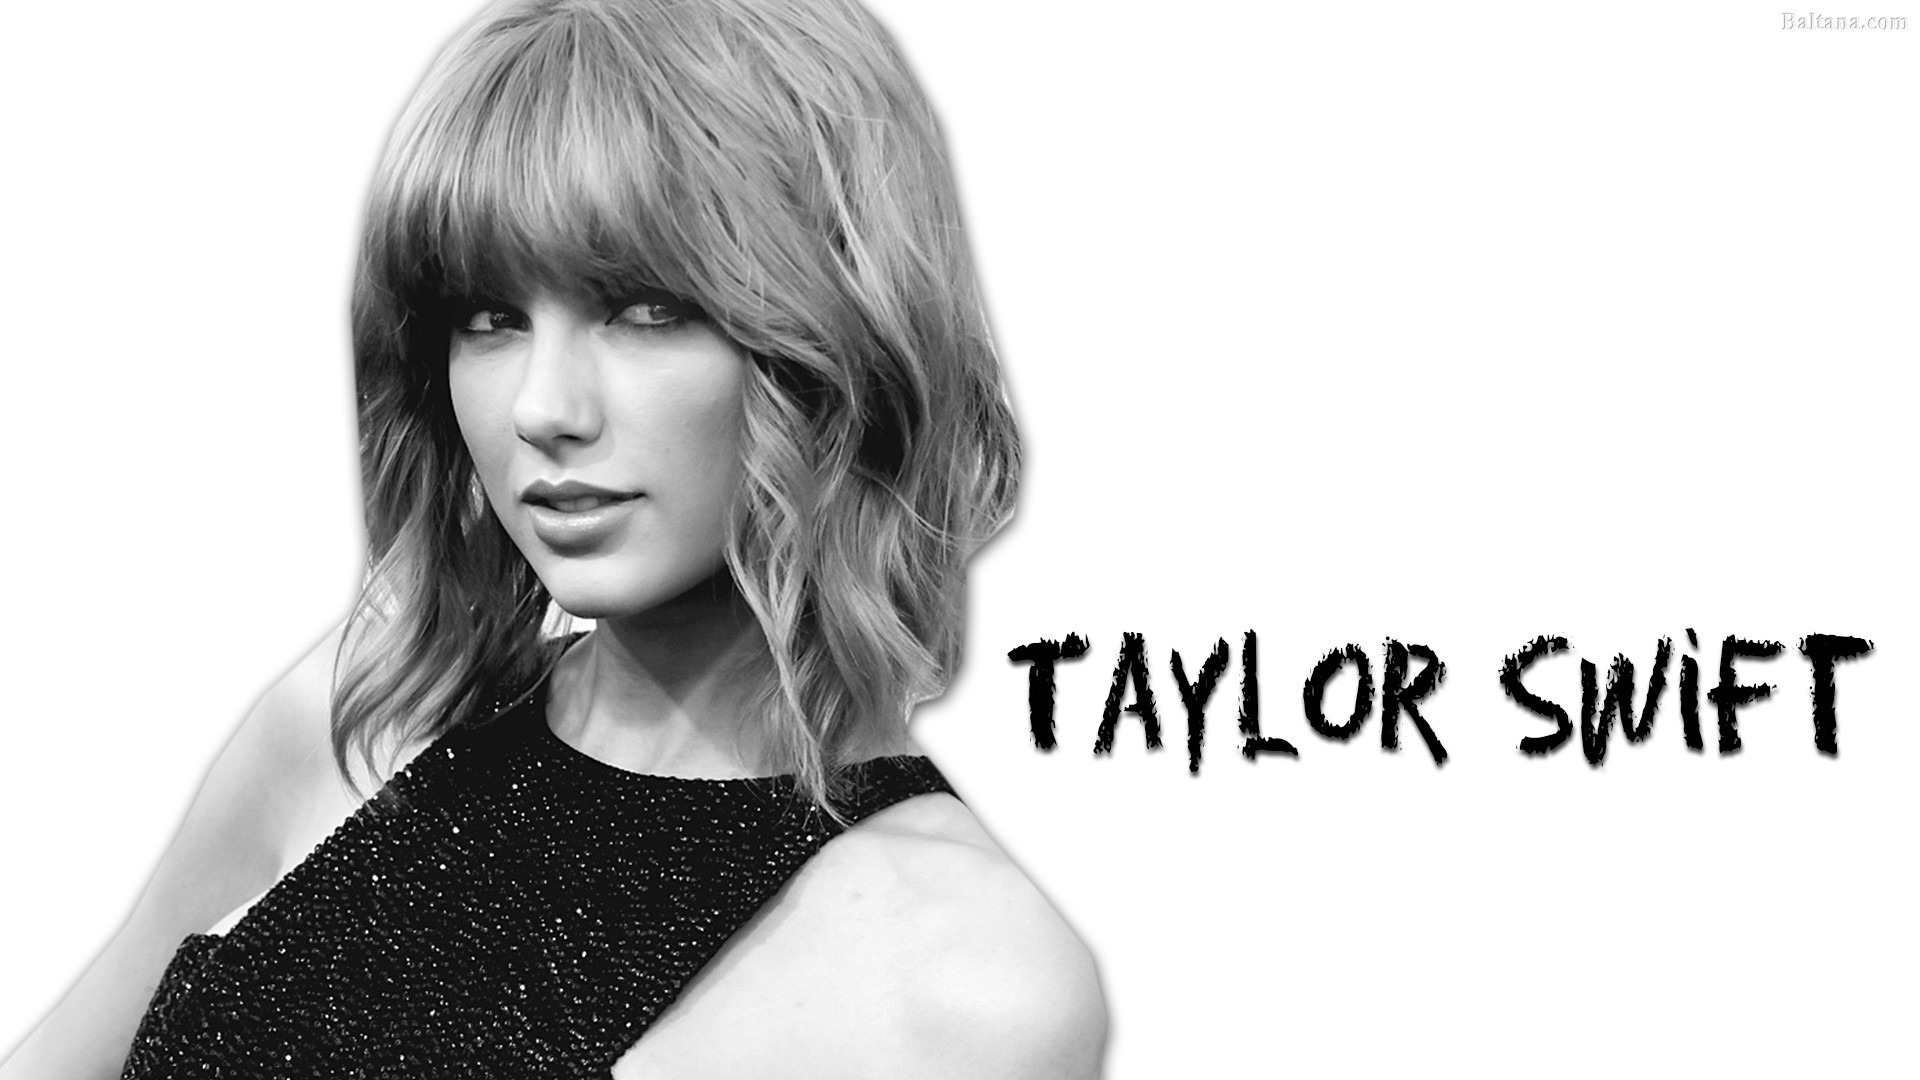 Taylor swift black and white wallpaper